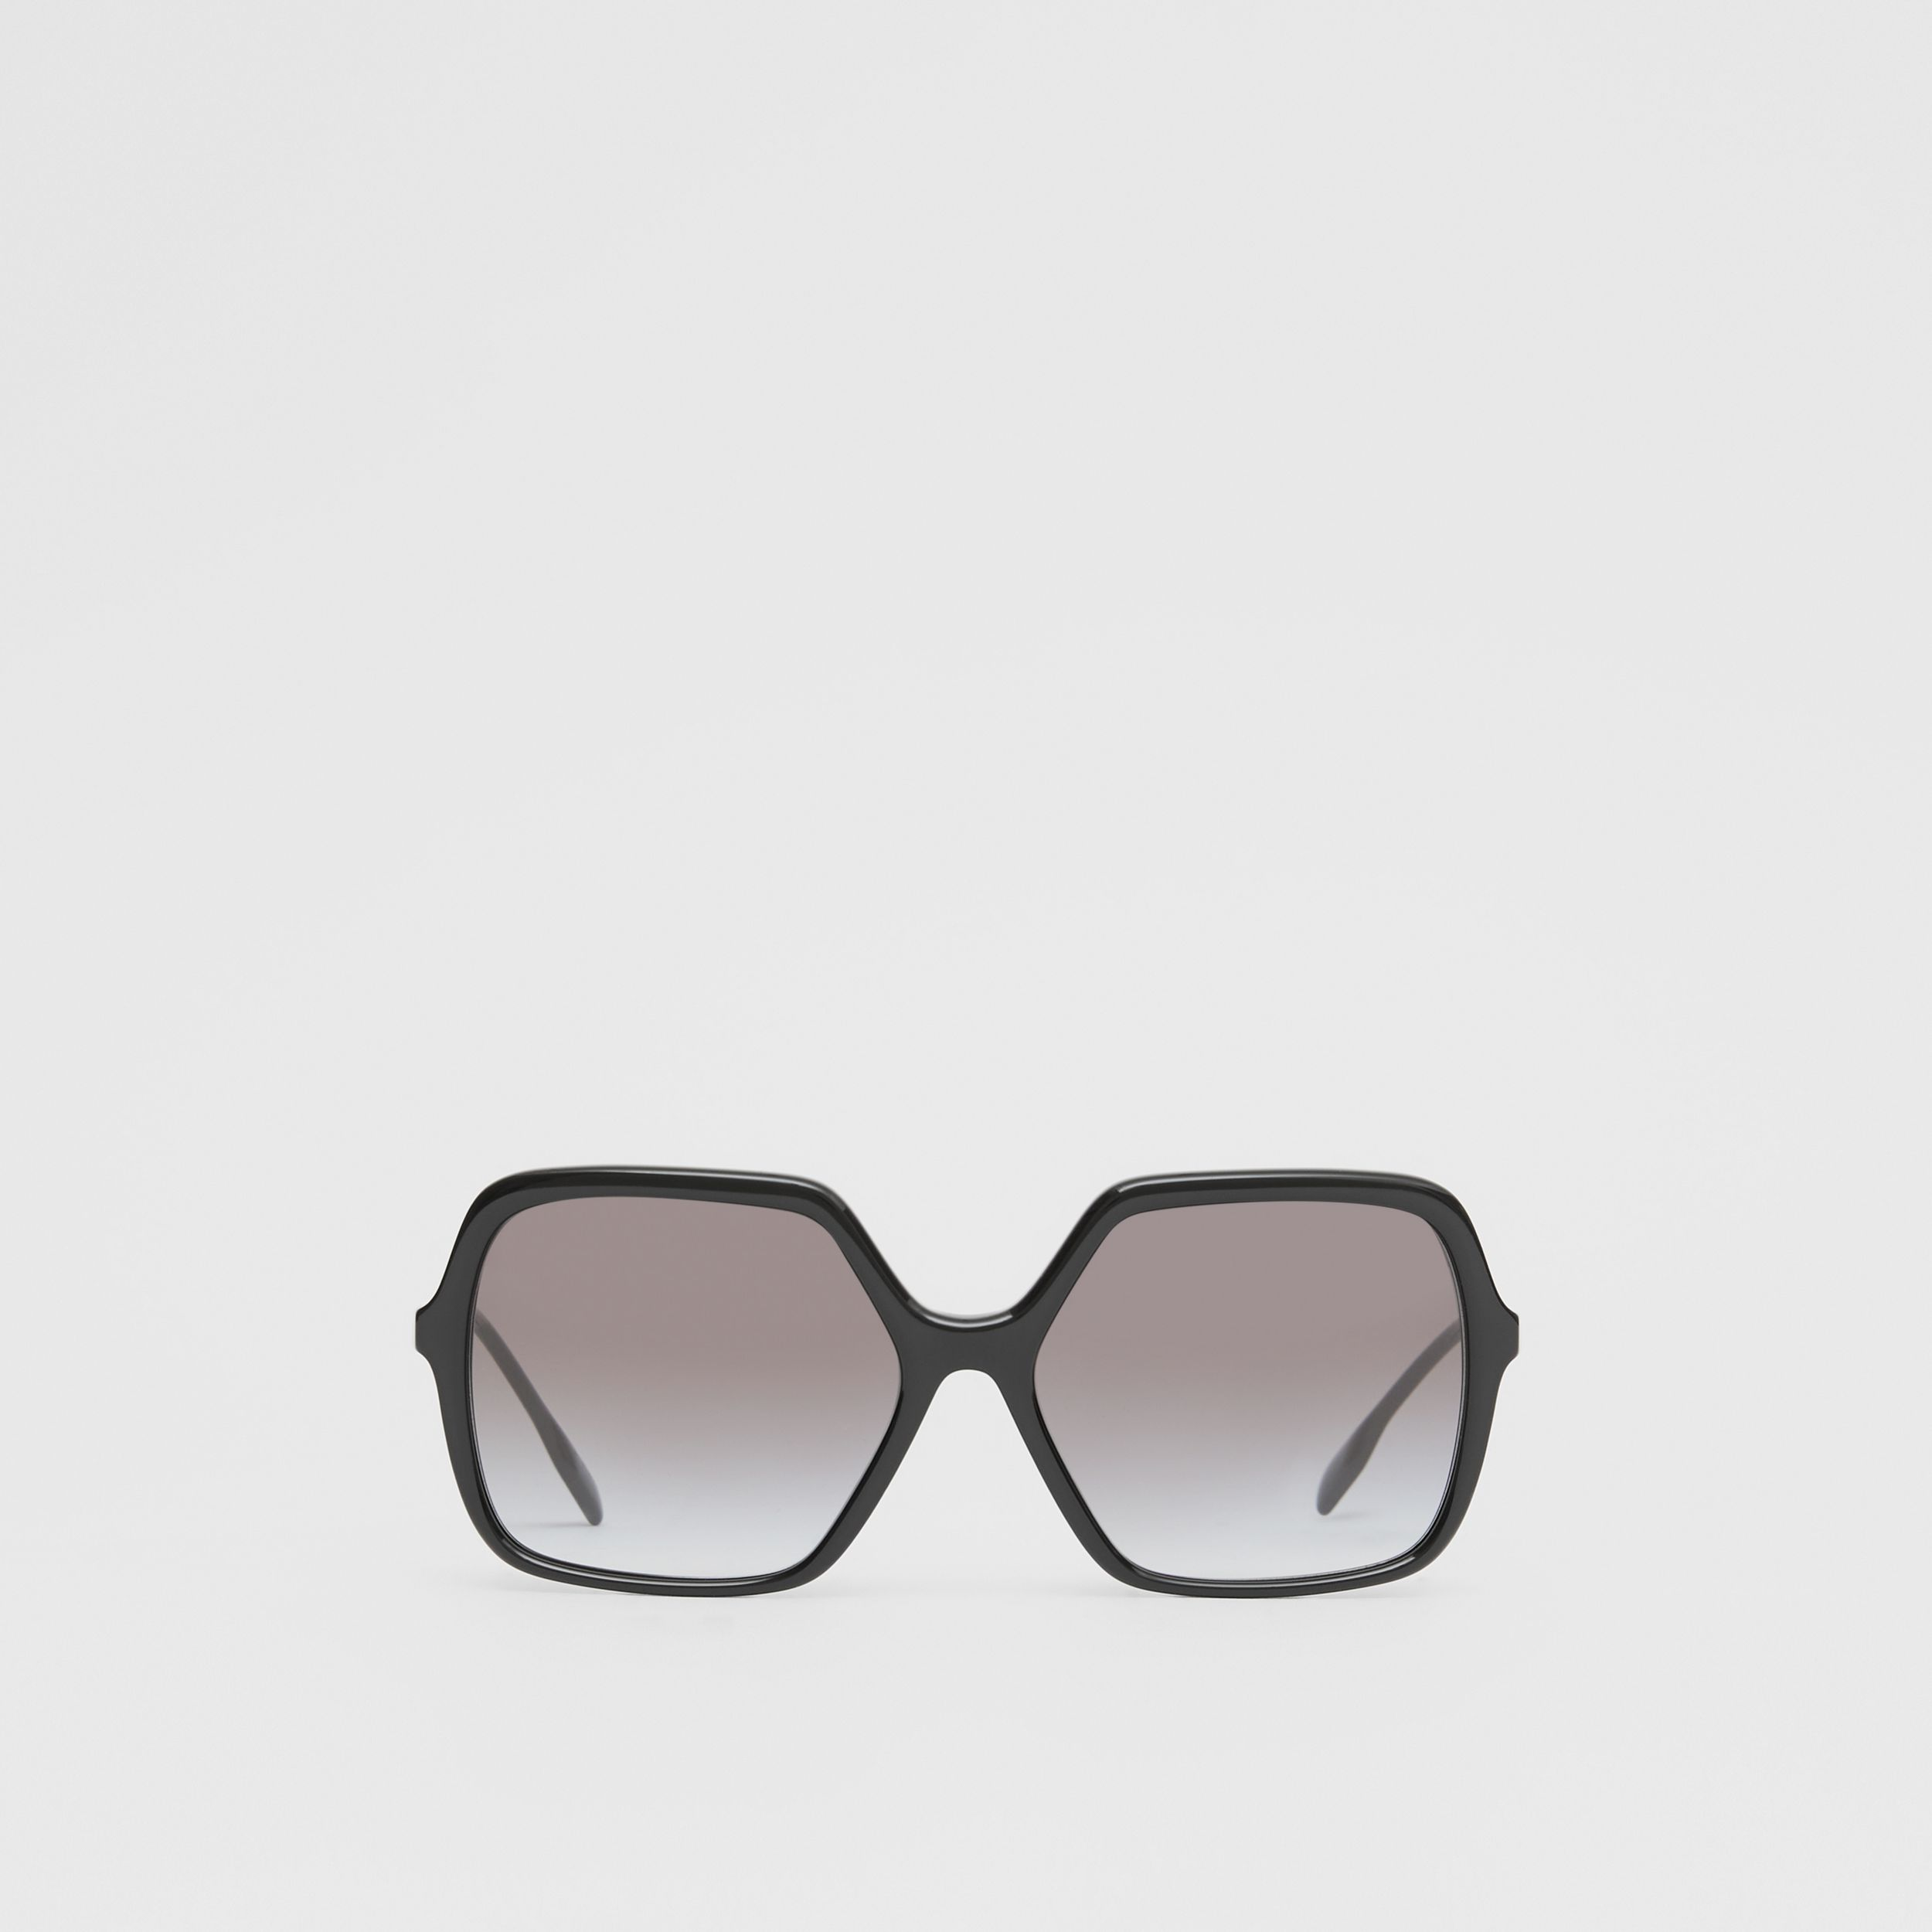 Oversized Square Frame Sunglasses in Black - Women | Burberry - 1